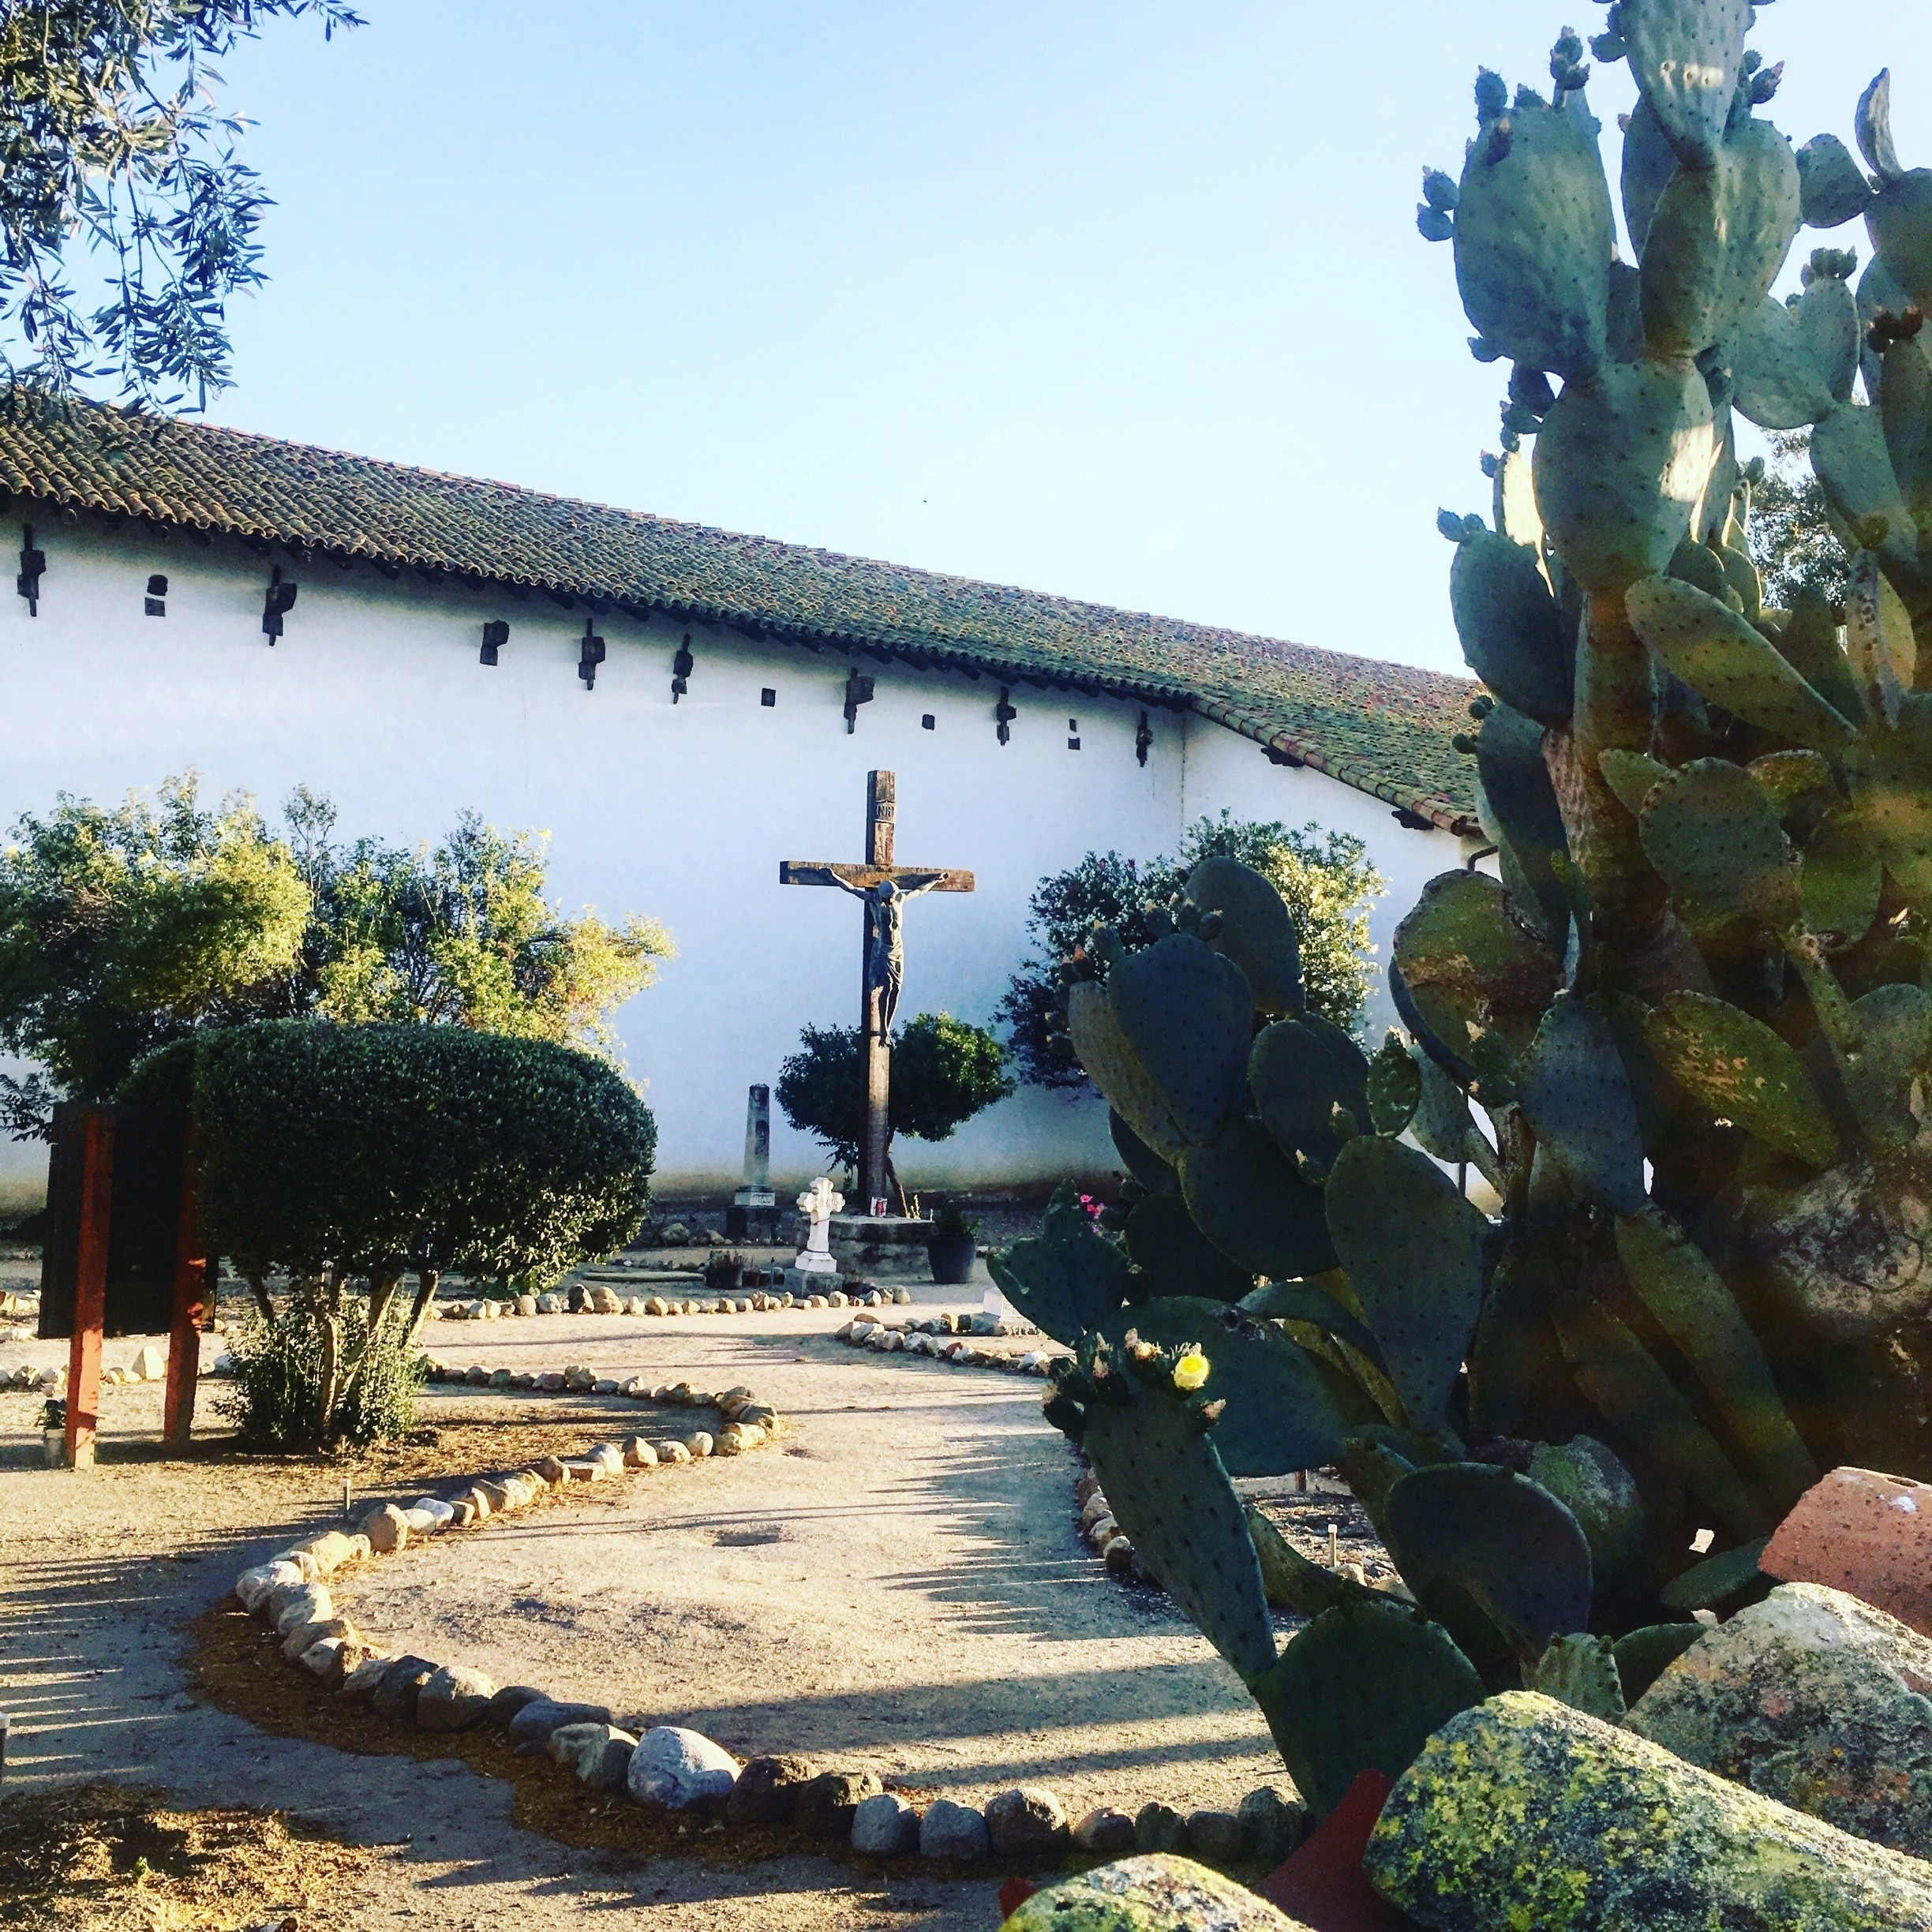 The Best Hotels Closest To Mission San Miguel In San Luis